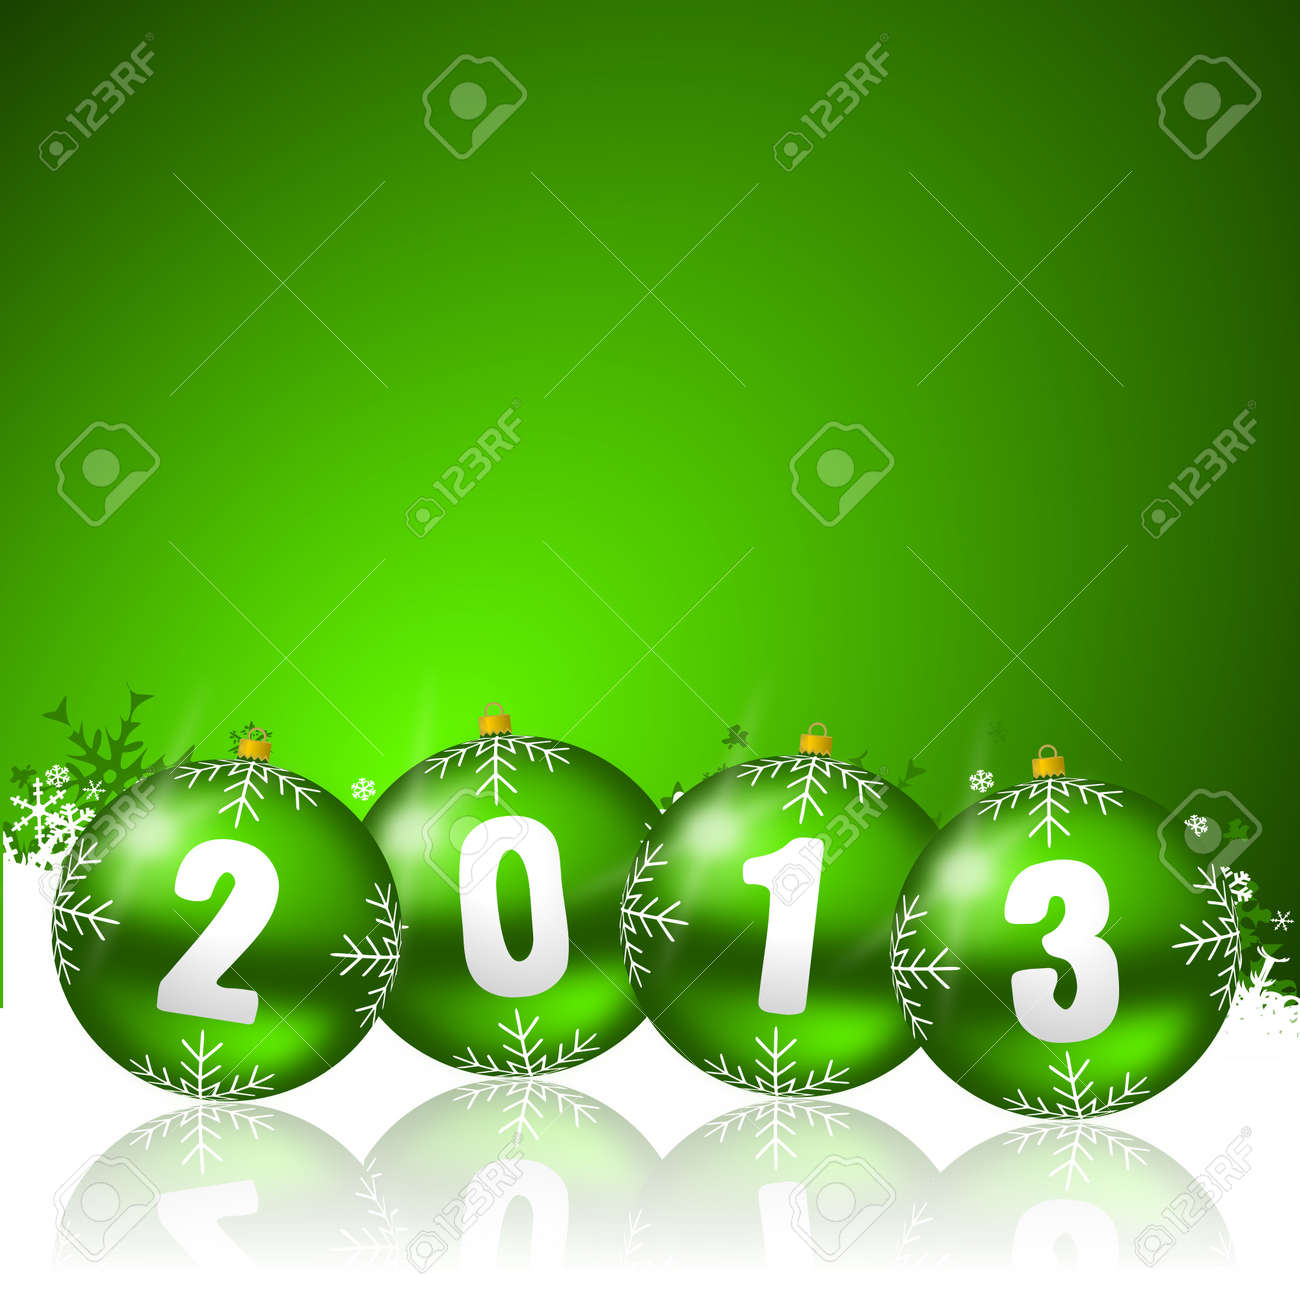 2013 new years illustration with christmas balls and snowflakes Stock Illustration - 17067226